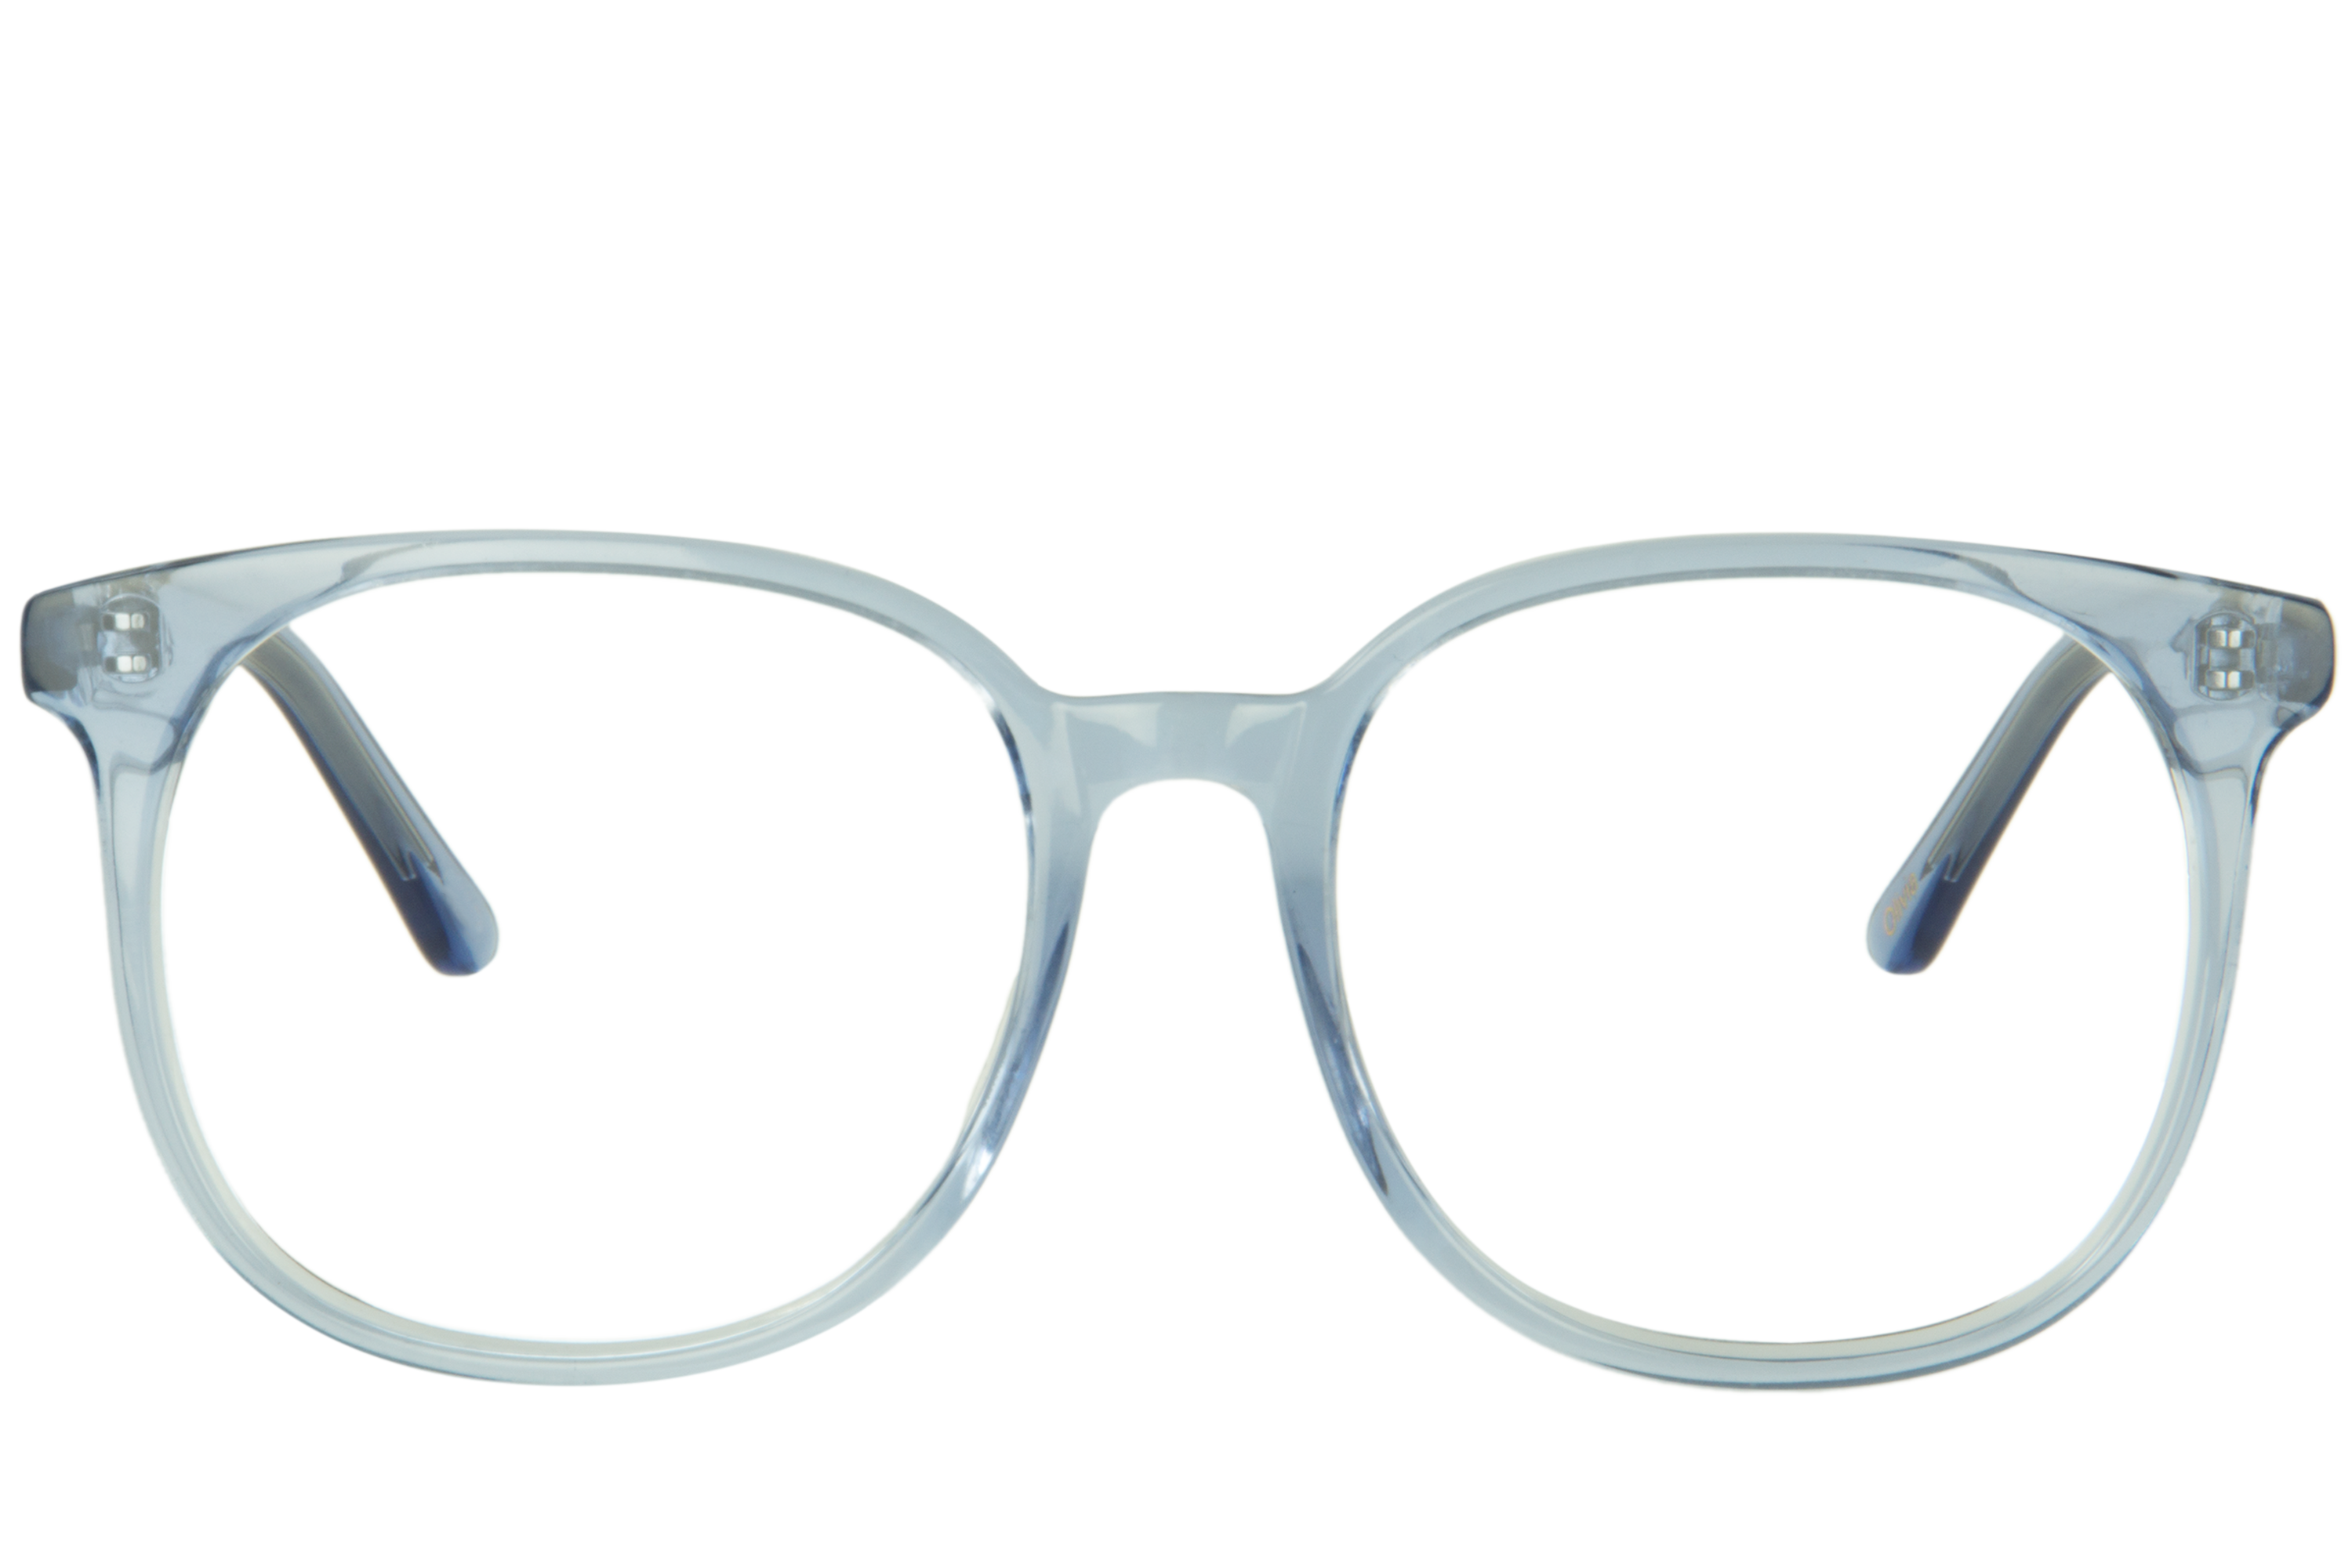 Olivia Blue is a Rectangular pair of glasses made from Blue Acetate 6b6d85839e65